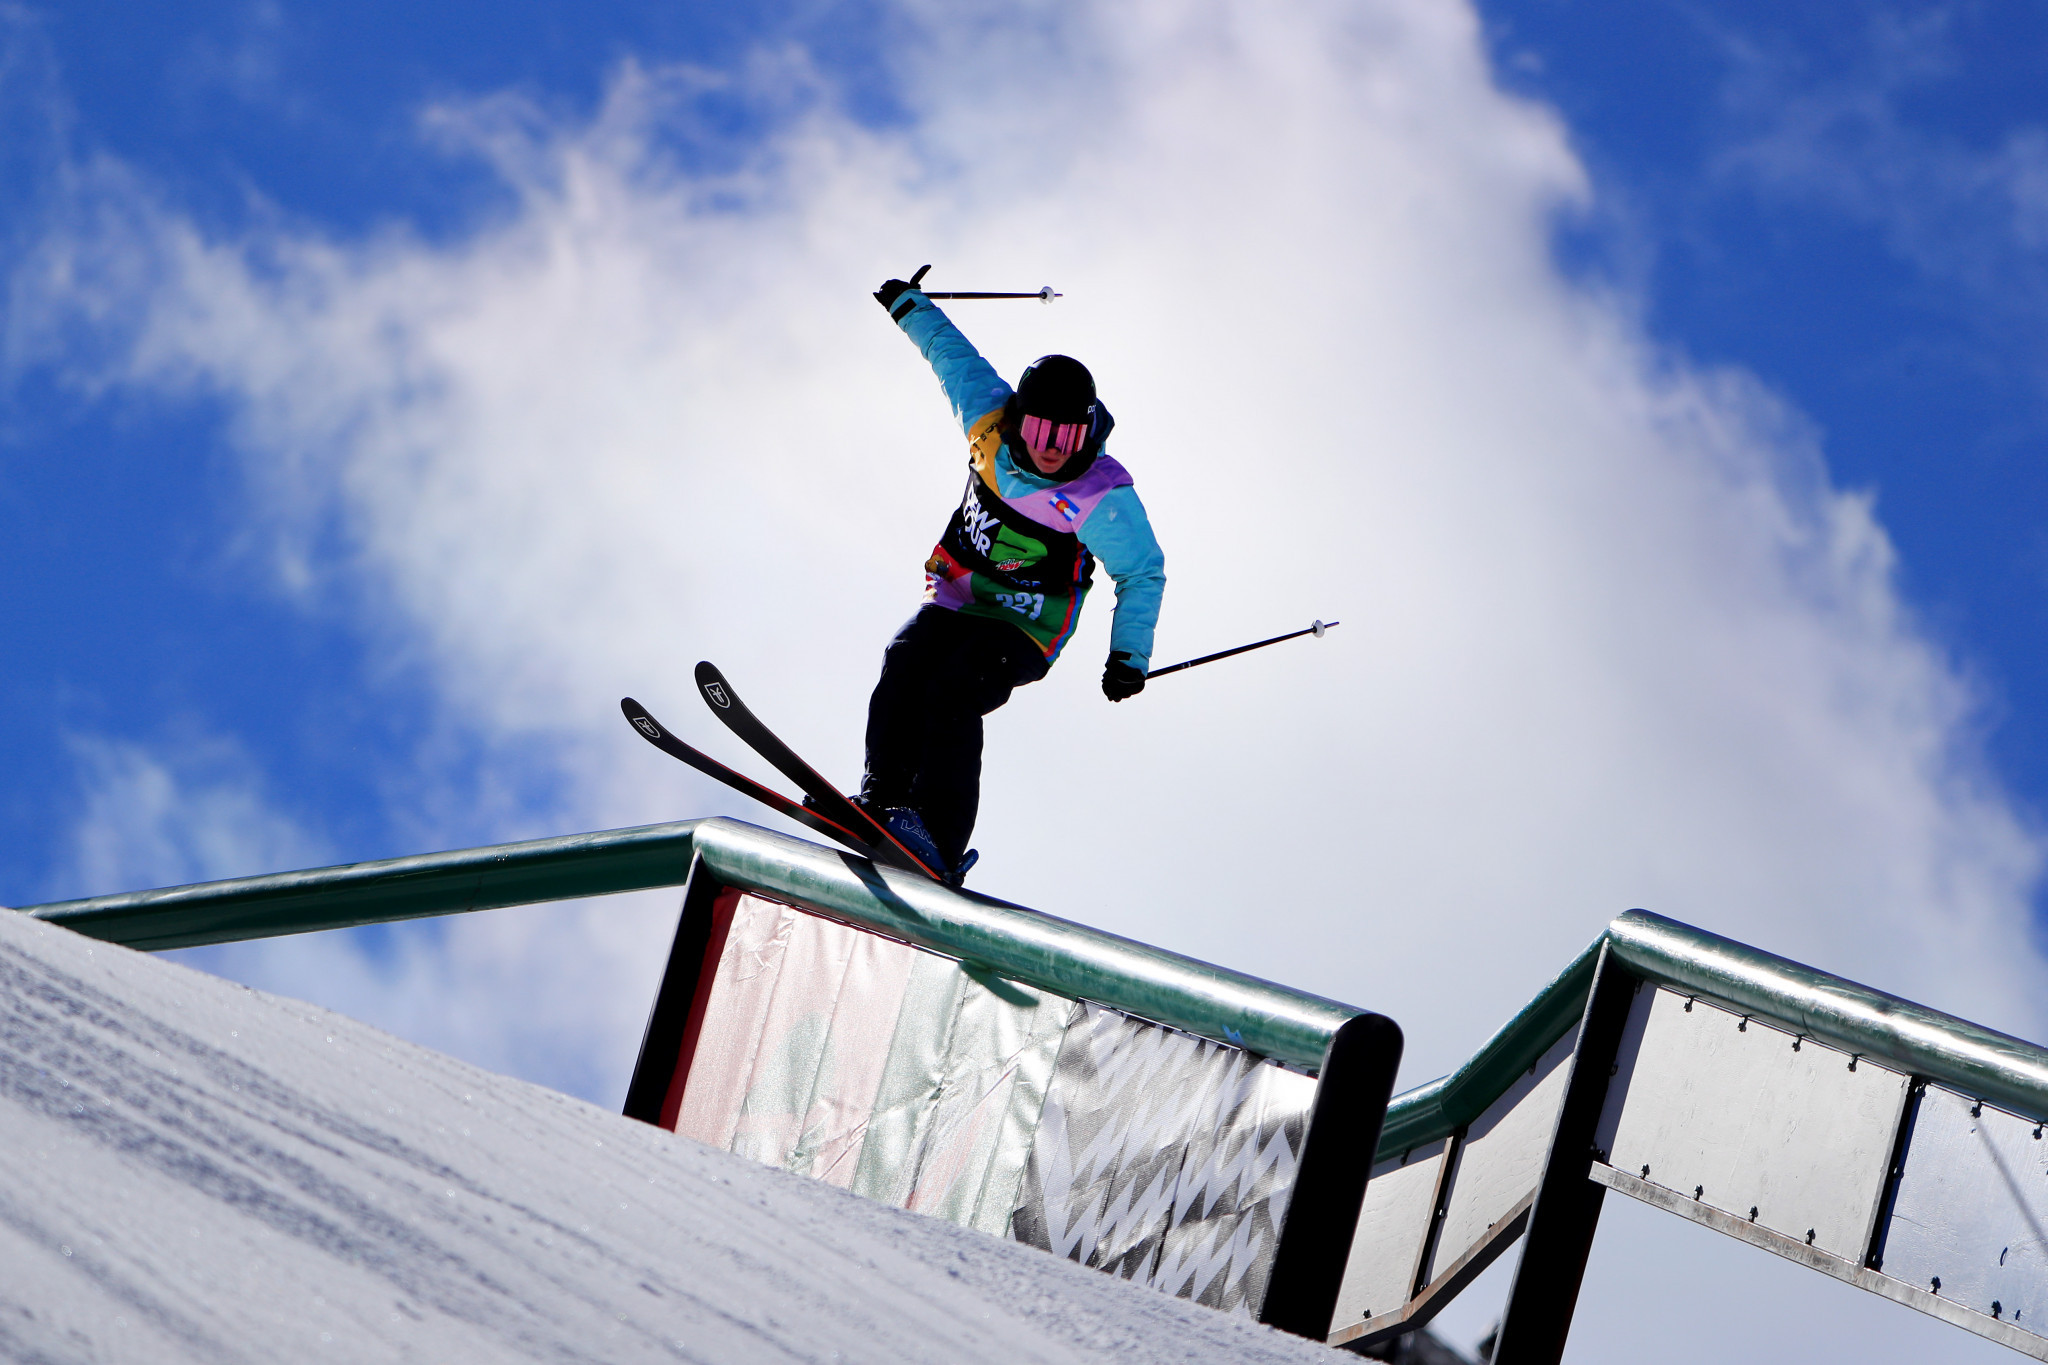 Olympic champion Hoefflin tops qualifying at last FIS Slopestyle World Cup of season